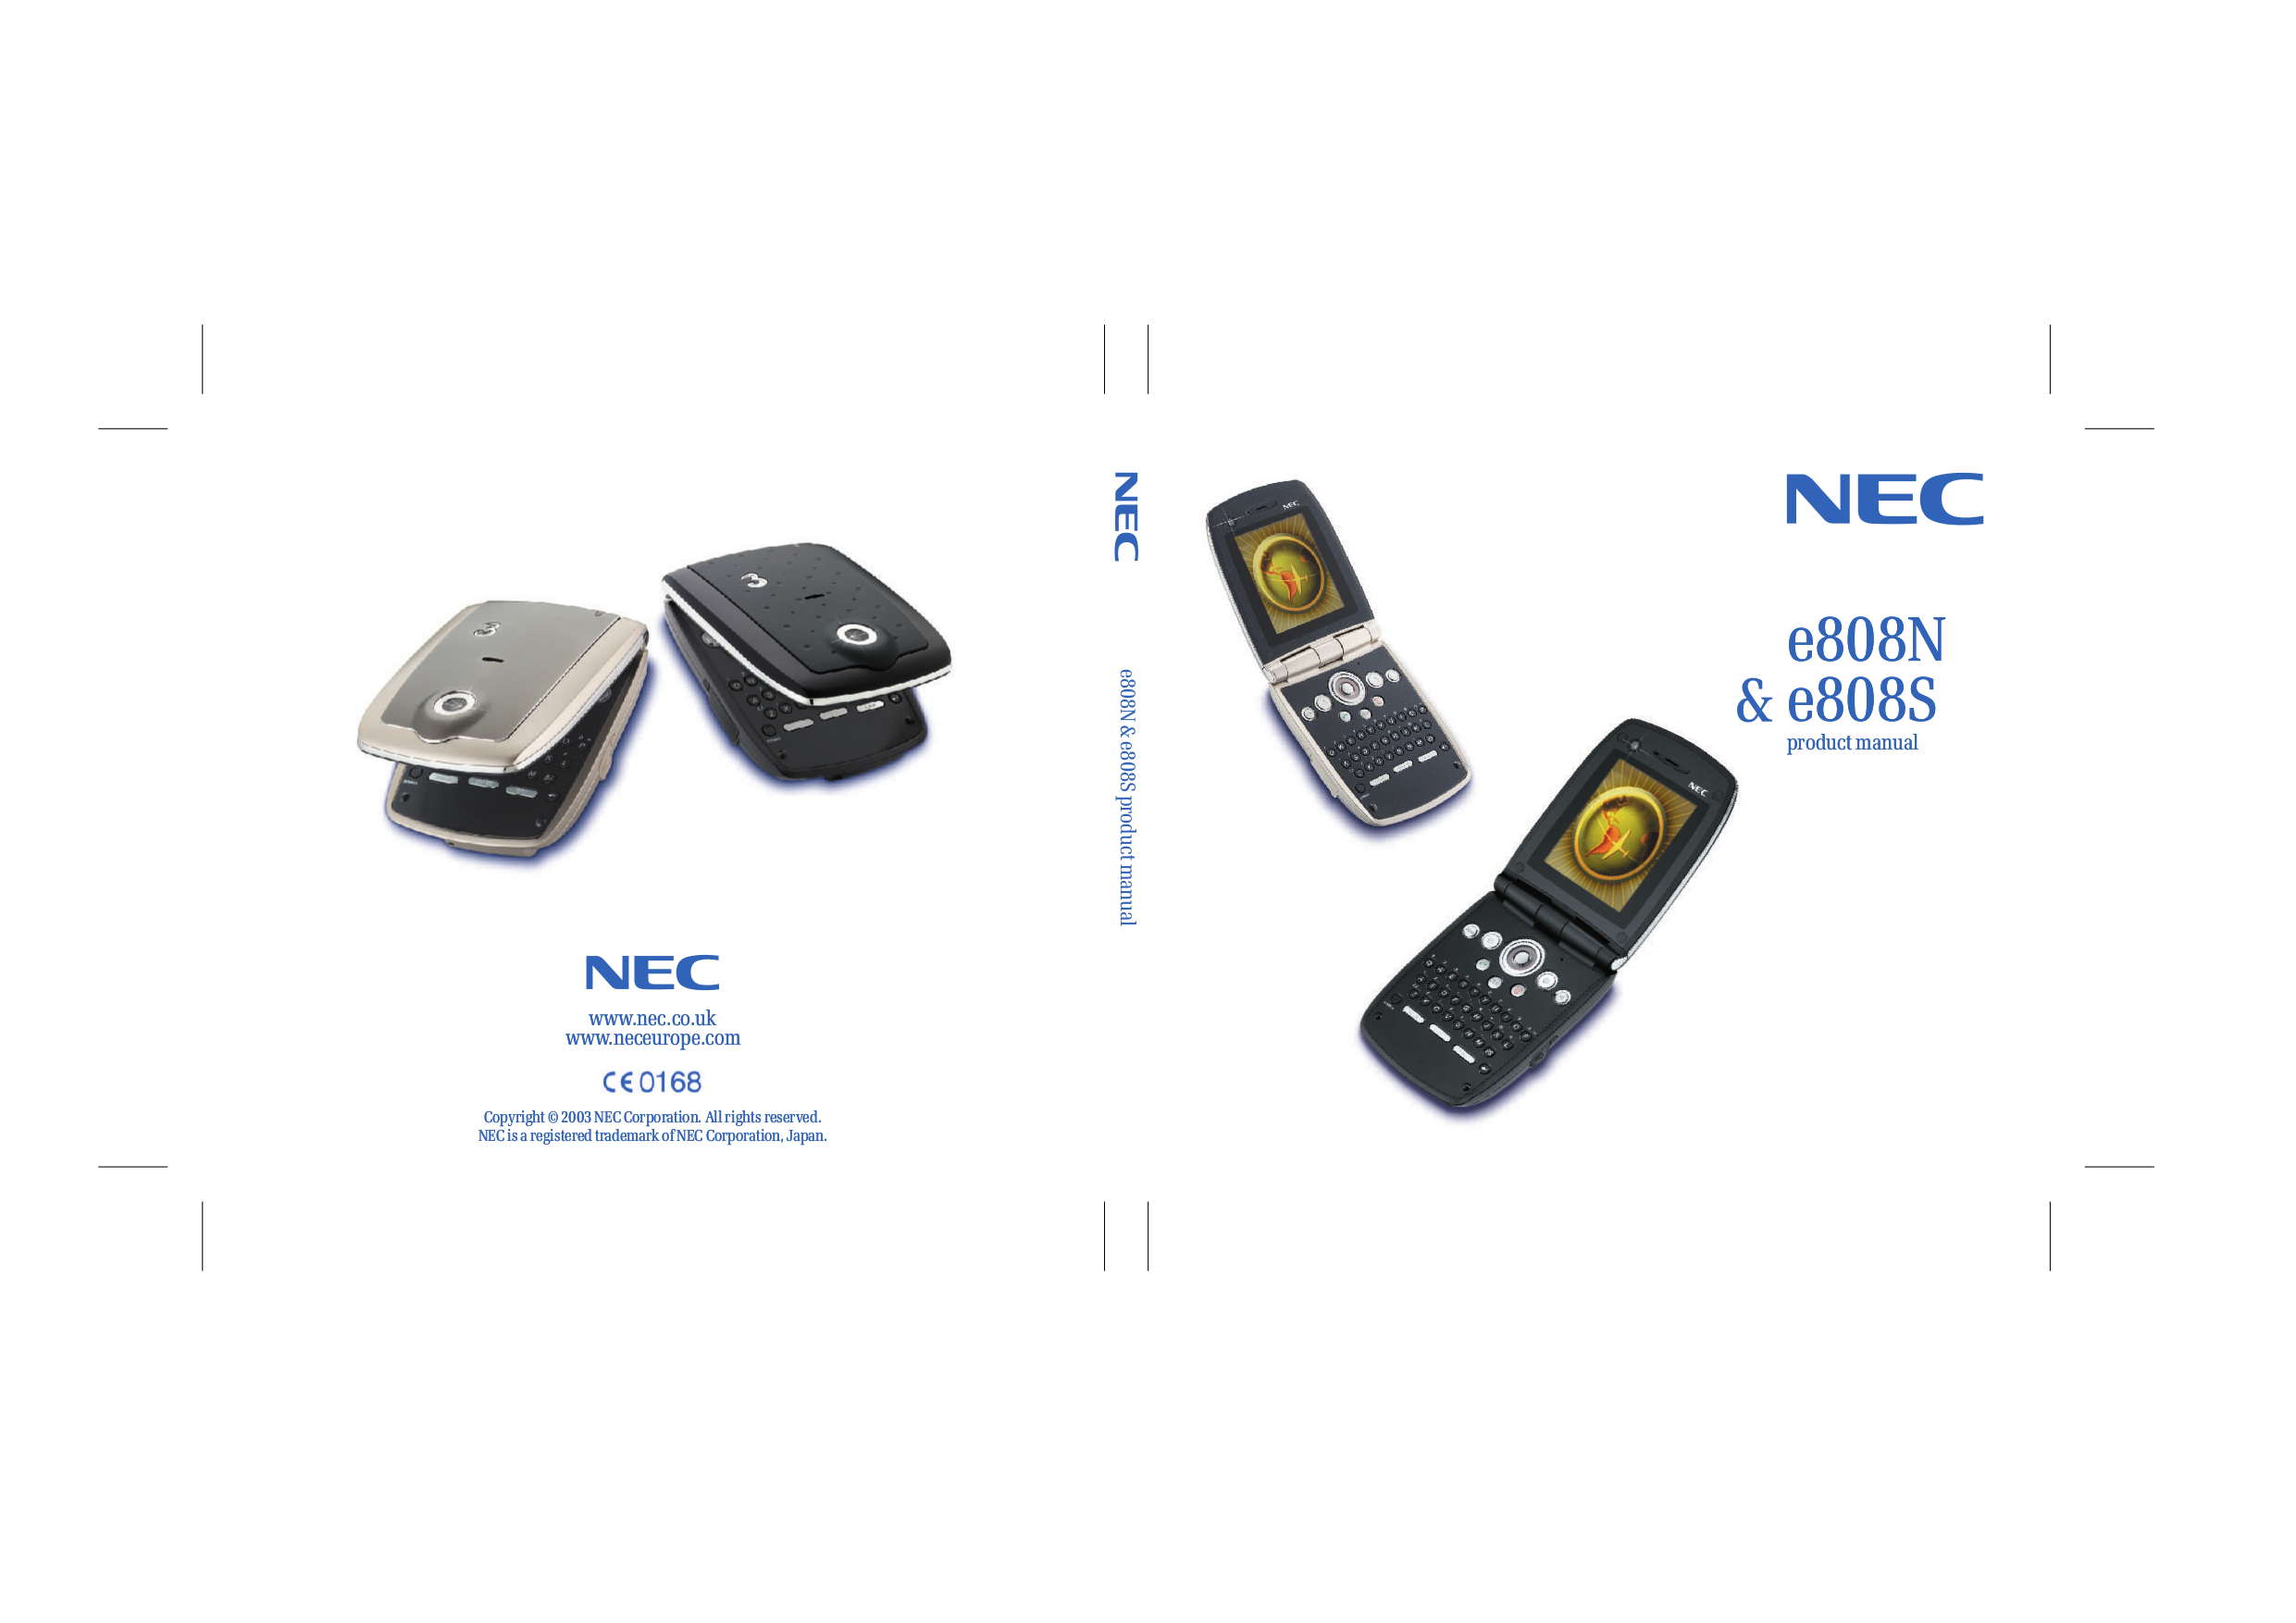 Nec 8100 manual nec sv8100 telephone system user guide array download free pdf for nec e808n cell phone manual rh umlib com fandeluxe Choice Image